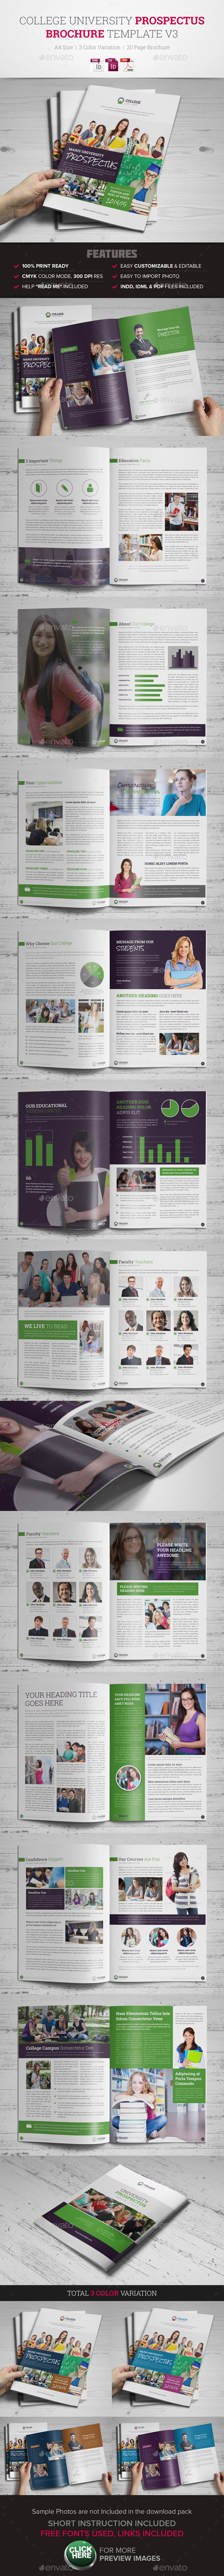 GraphicRiver College University Prospectus Brochure Template 3 10420246